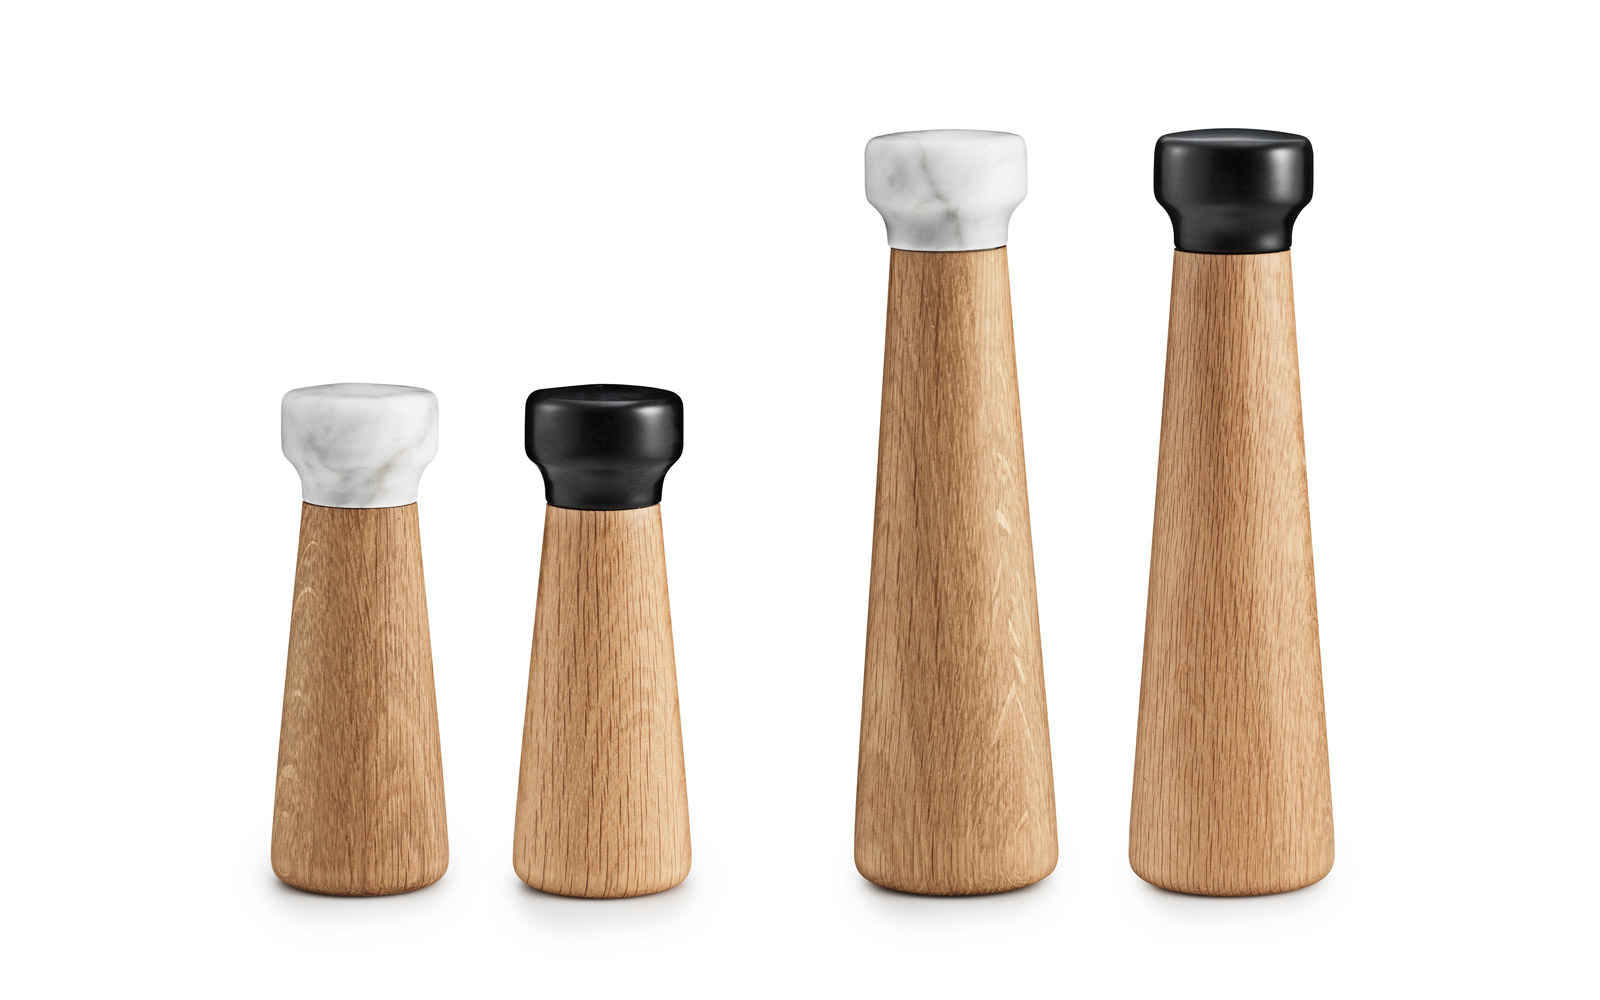 craft mills small salt  classic look with a simple flared shape  - craft